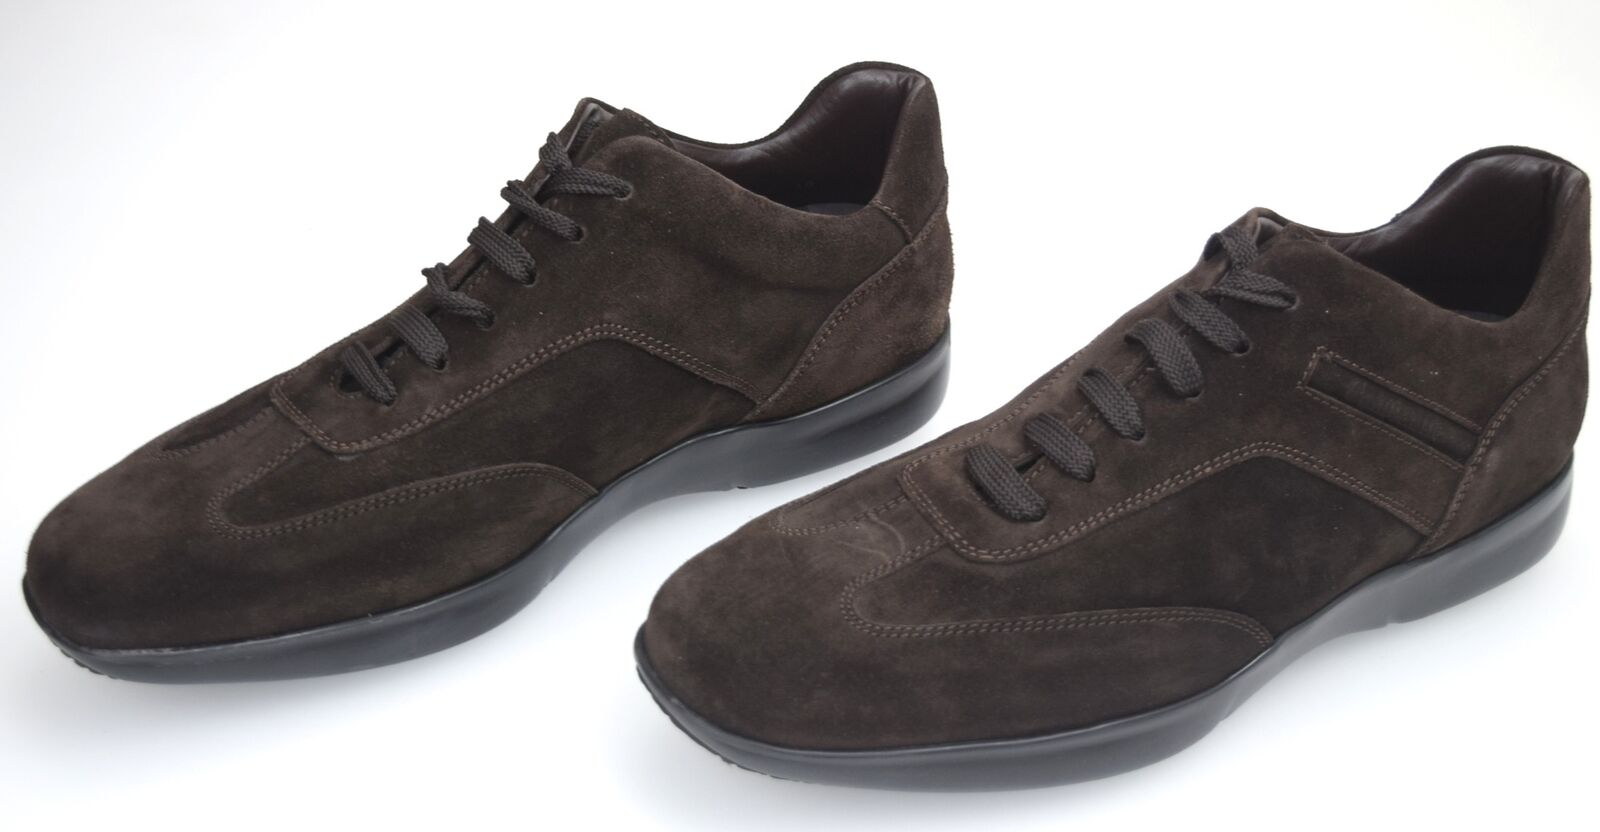 CAMPANILE MAN CASUAL FREE TIME SNEAKER SHOES SUEDE CODE SP16 GINNICA LACCI OR